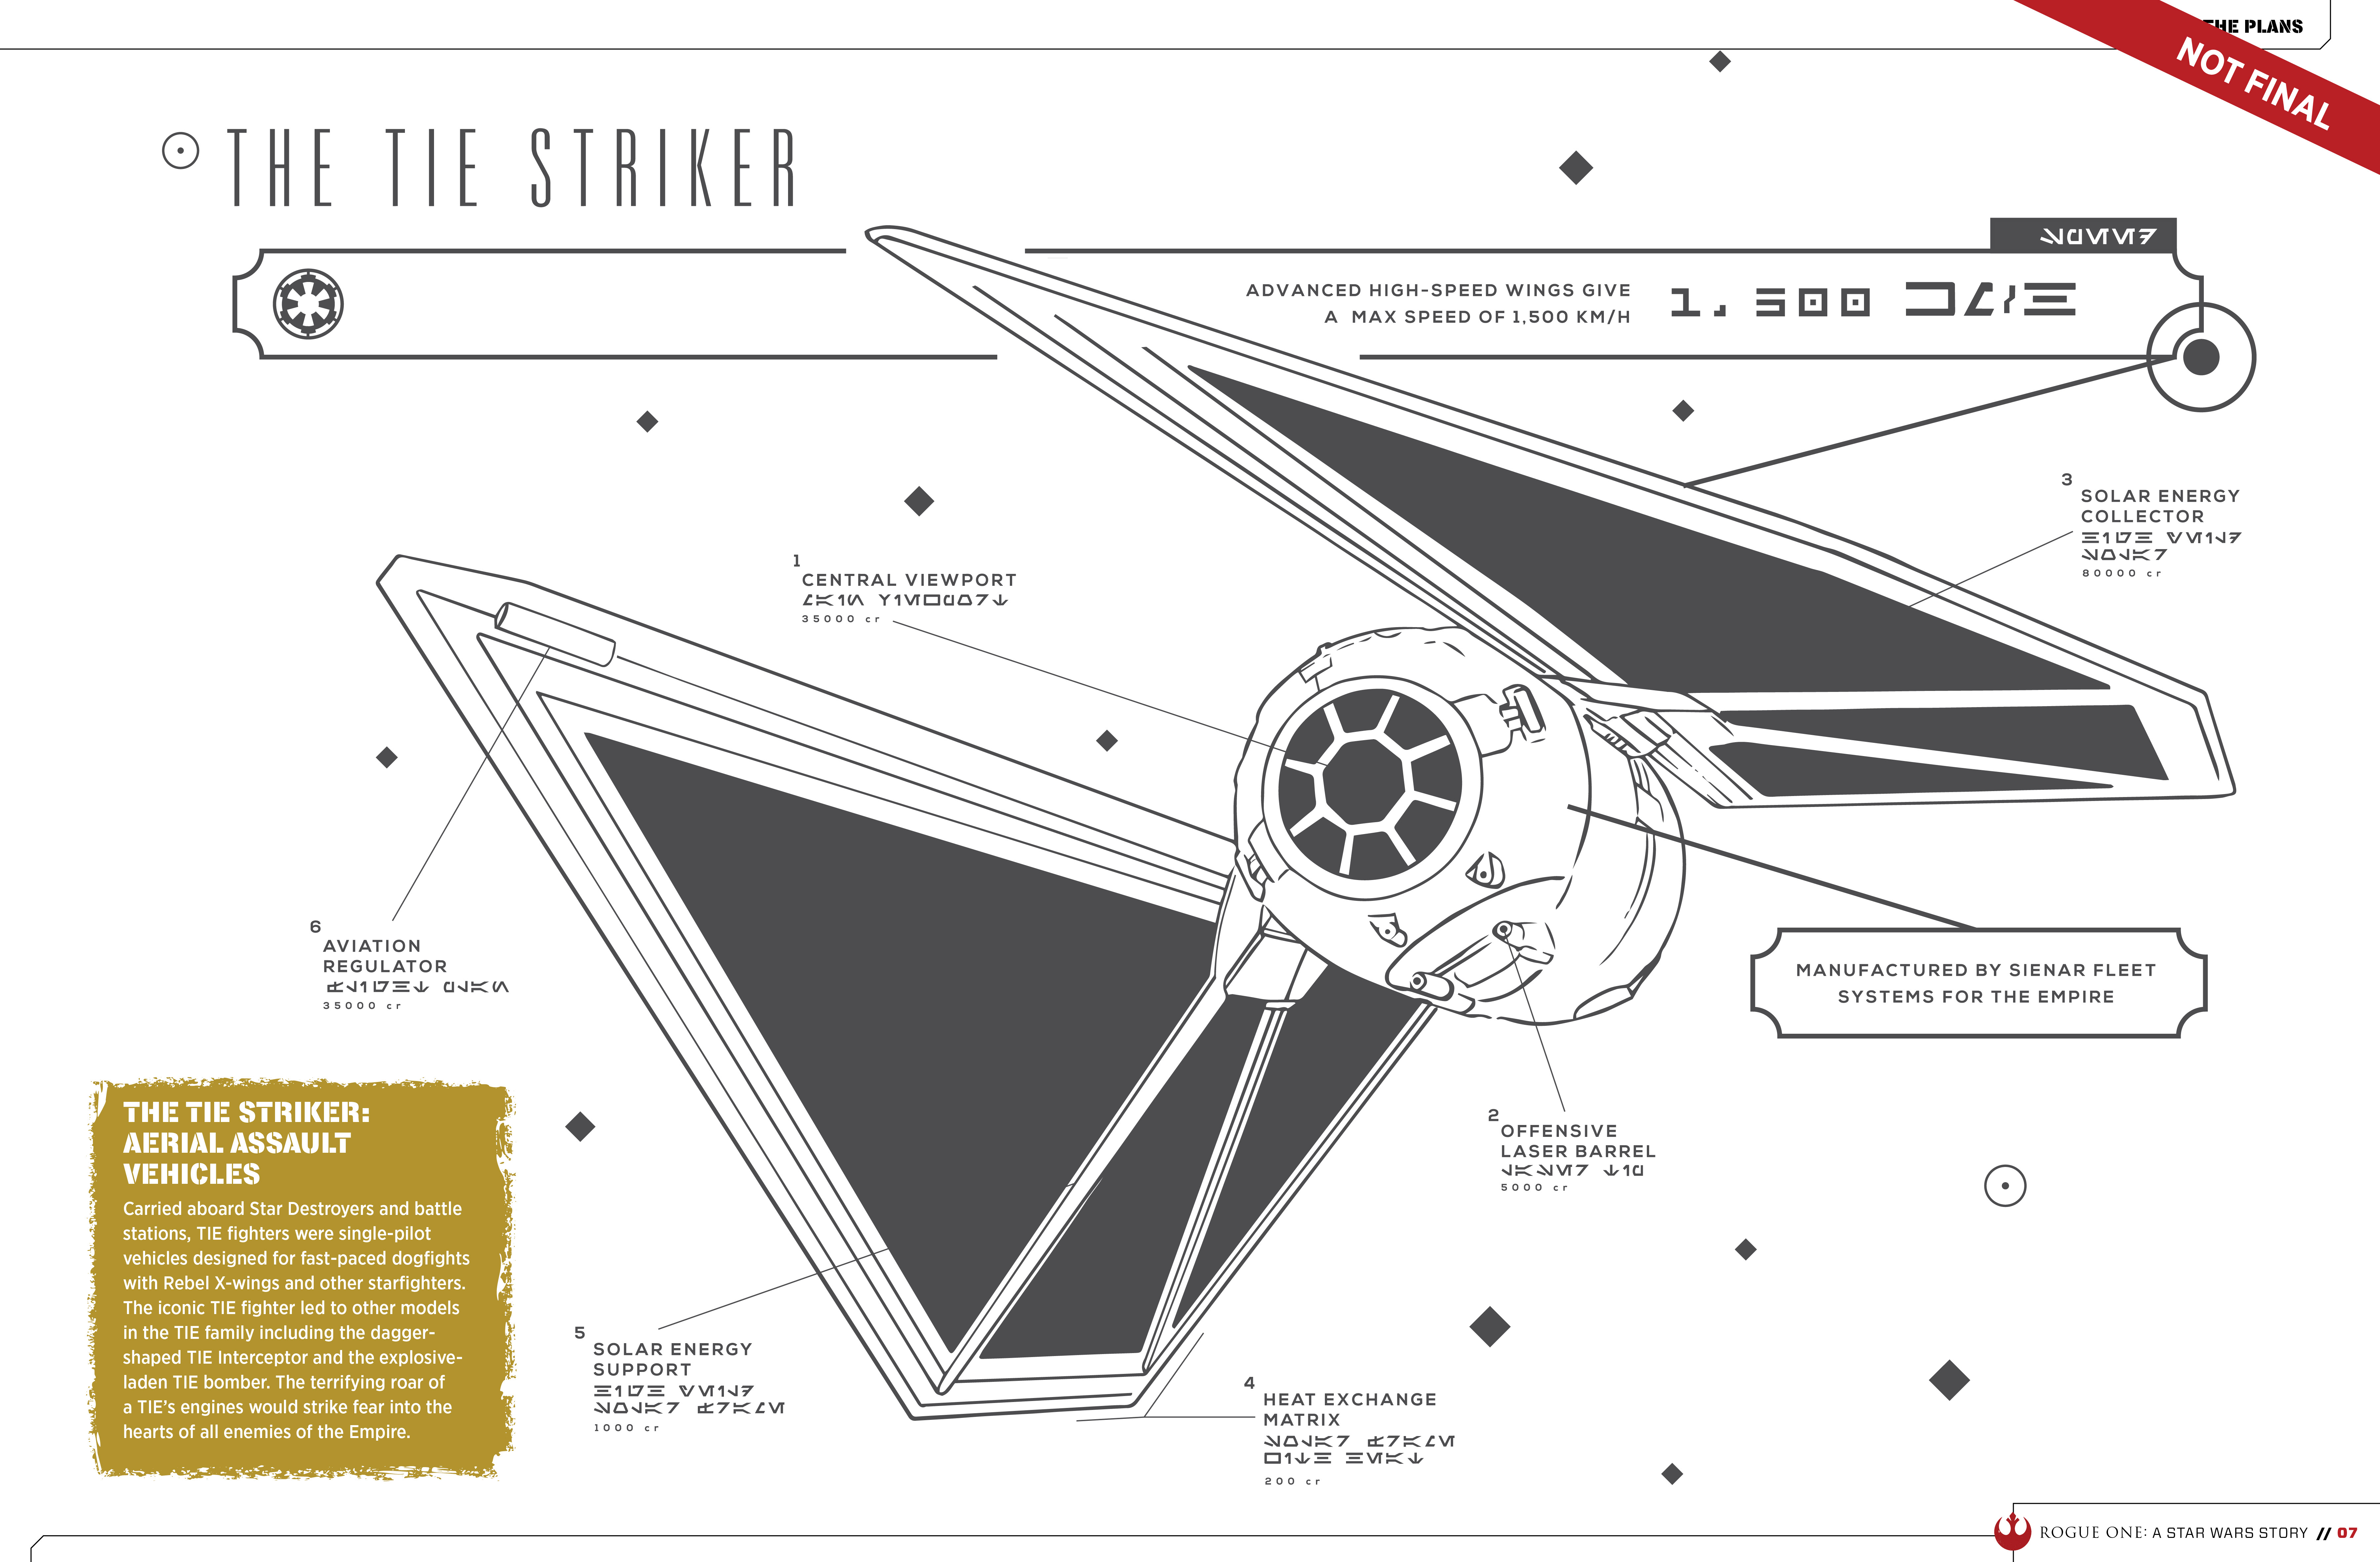 rogue one tie striker photo - 1